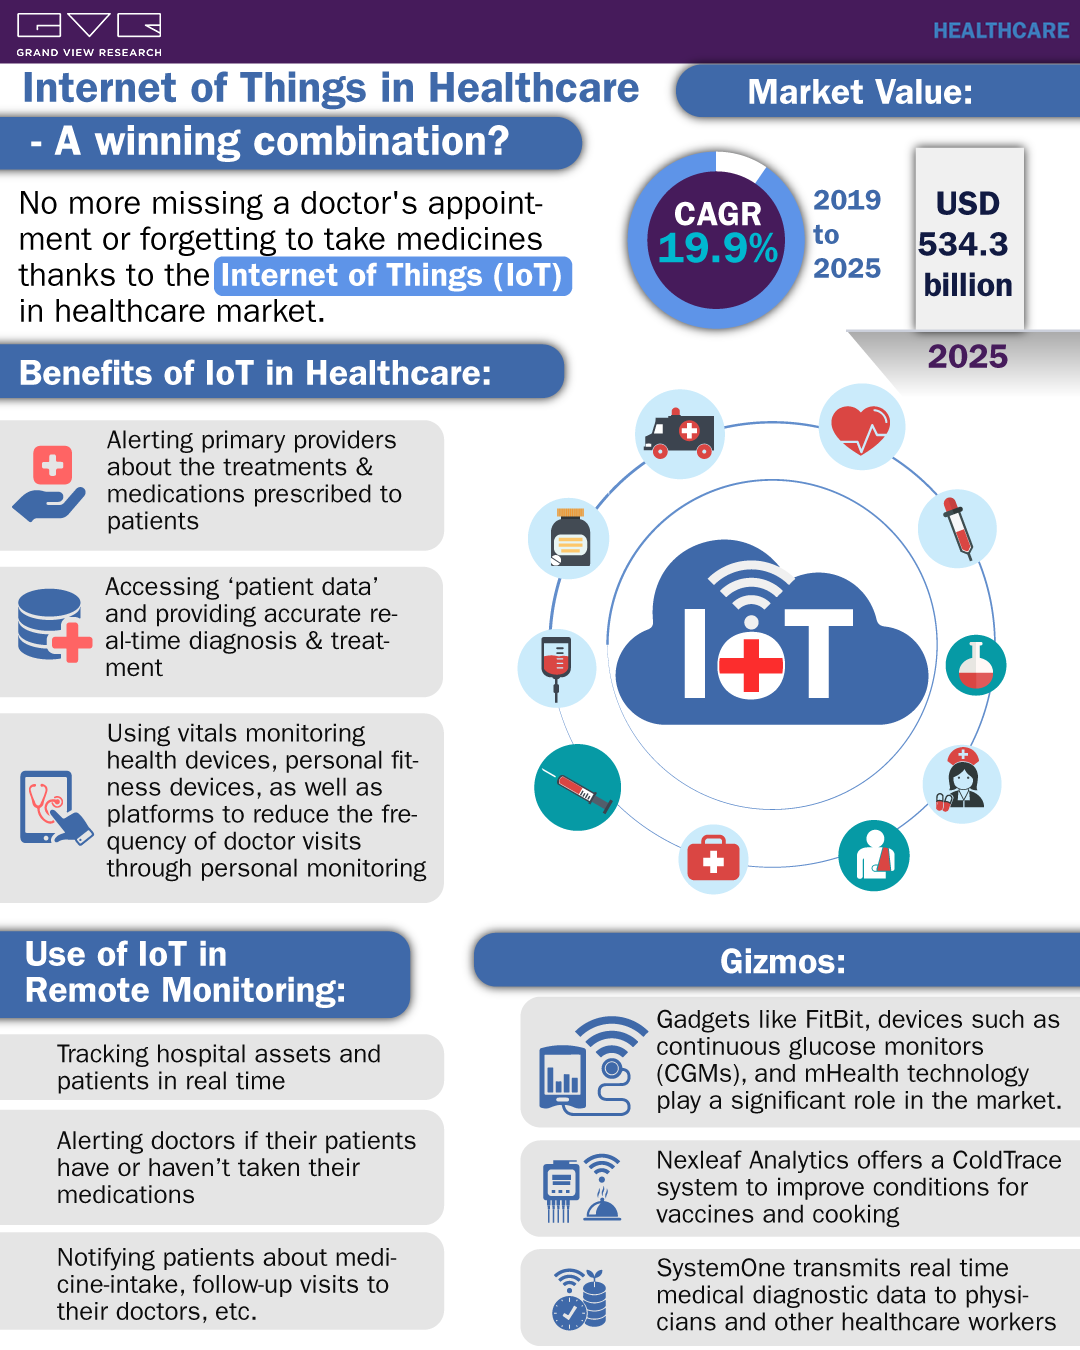 Internet of Things In Healthcare Market